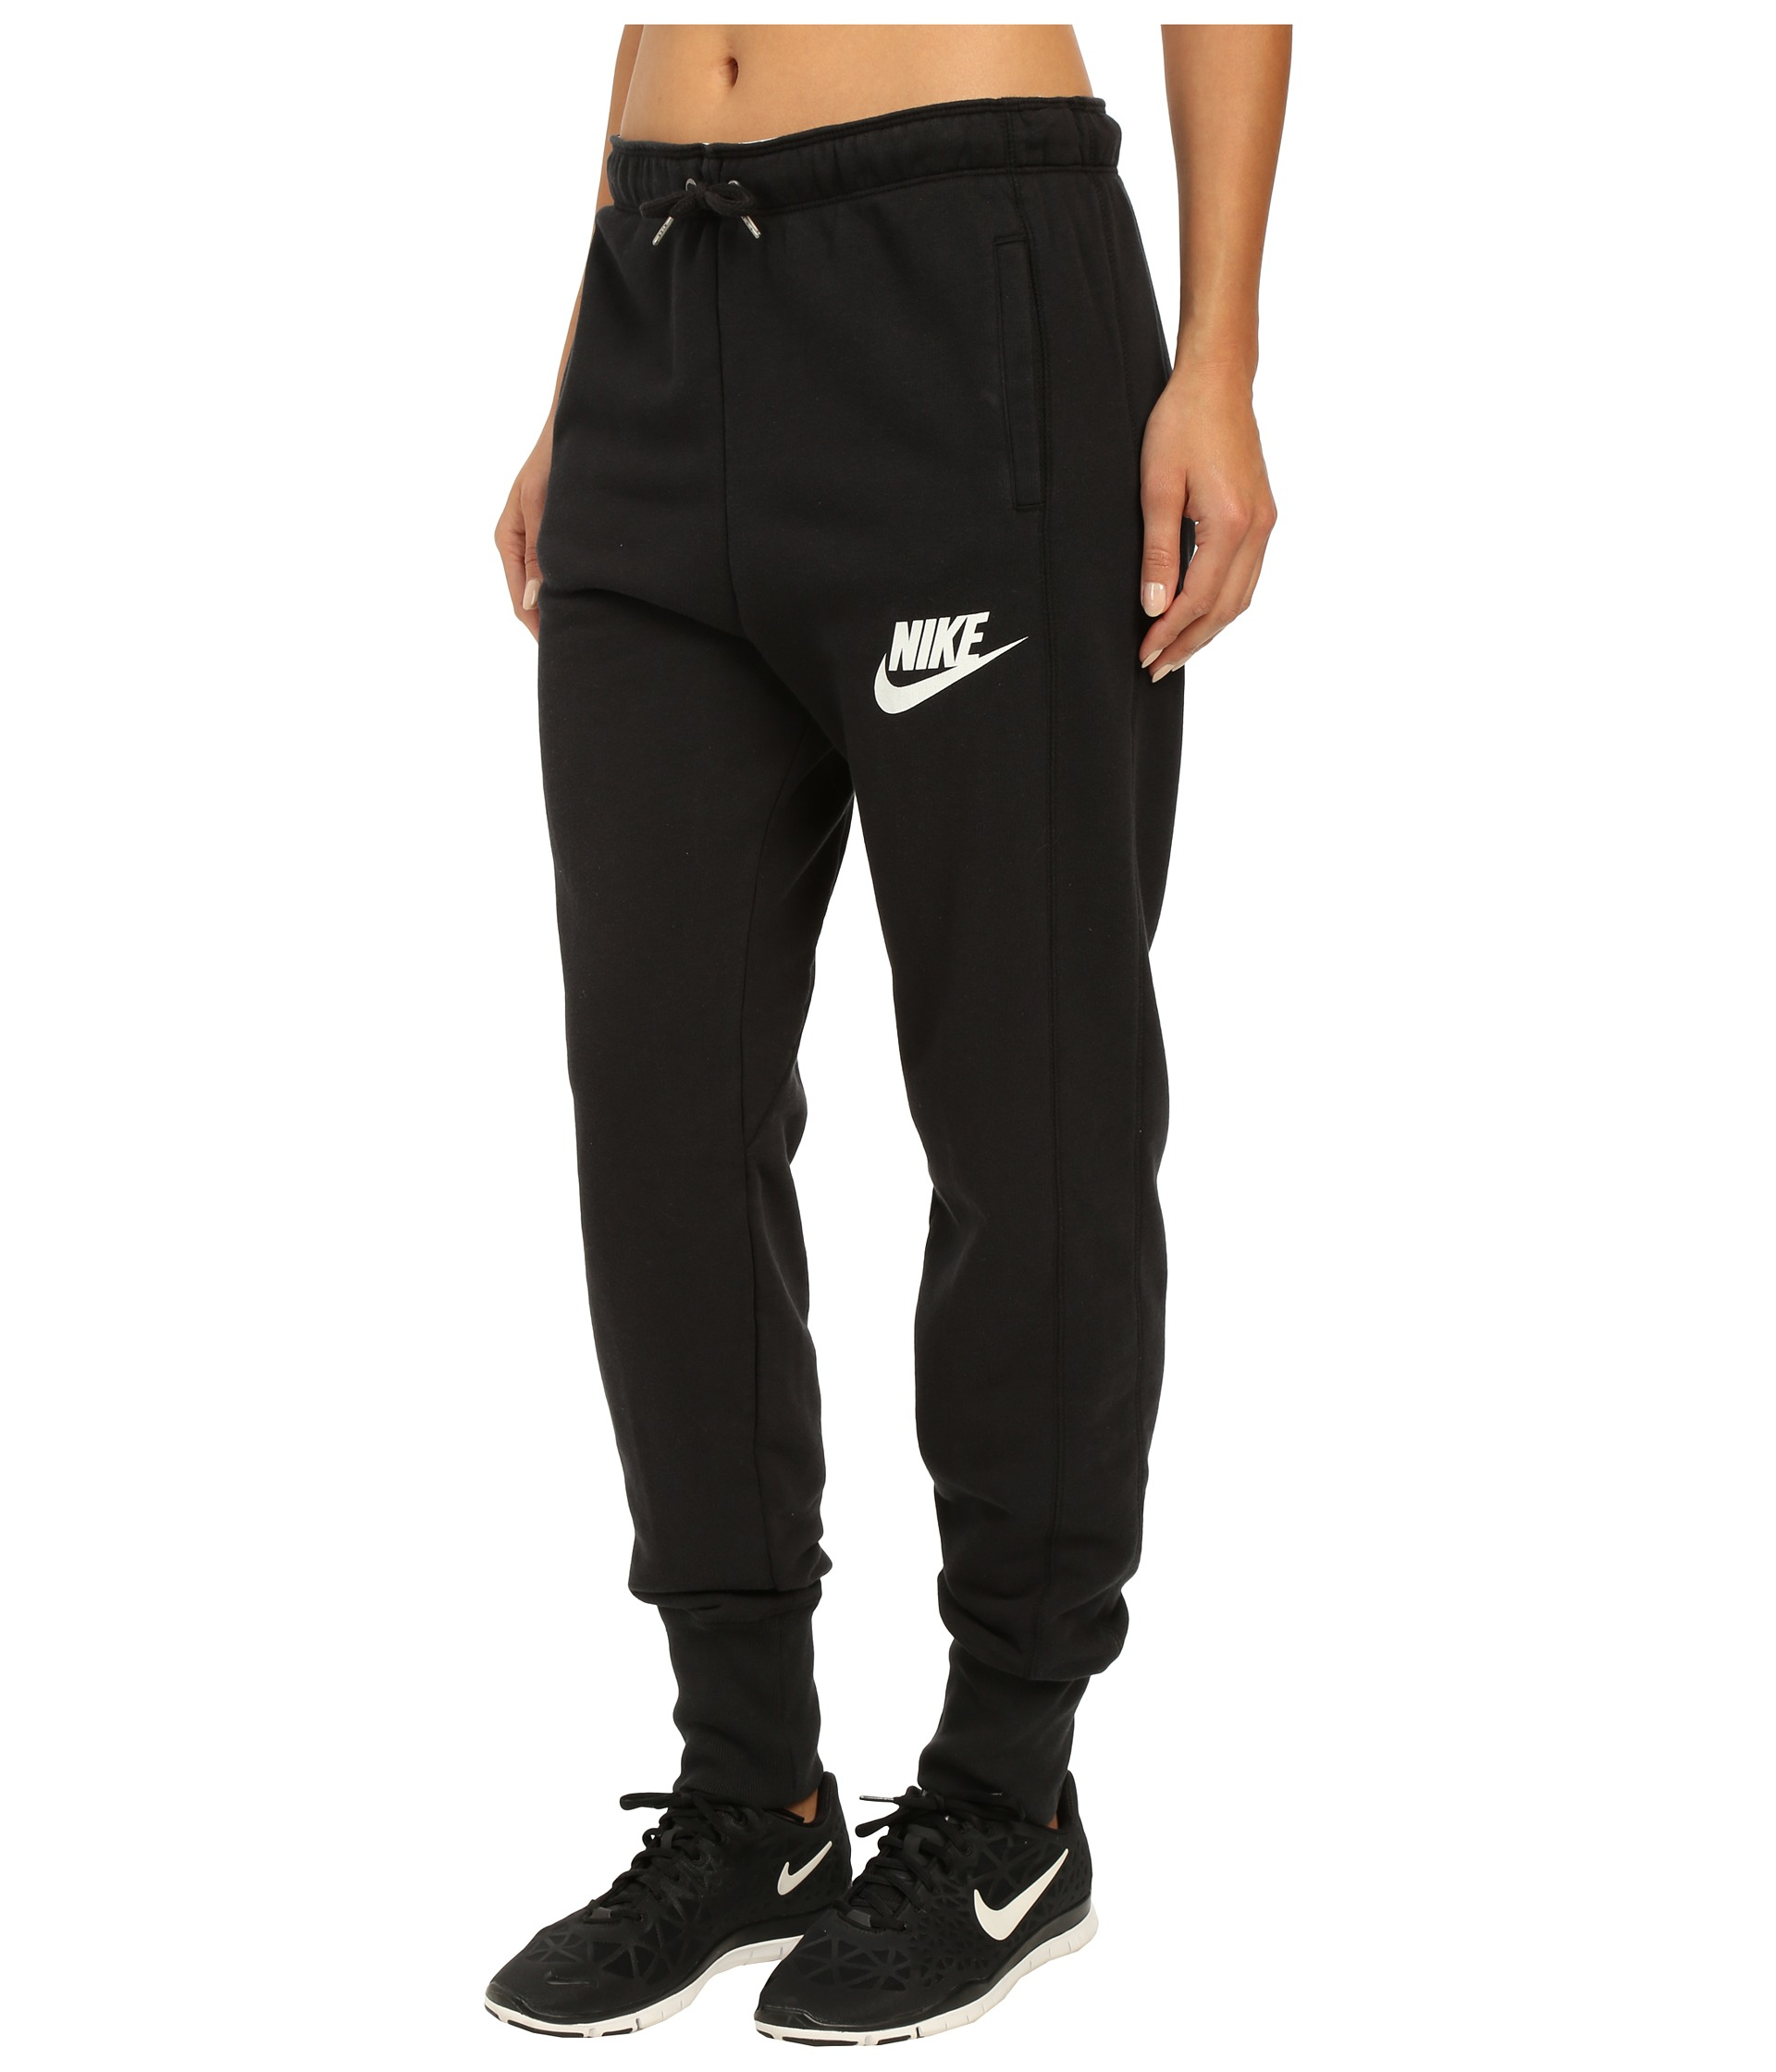 Amazing Nike Rally Jogger Sweatpant  Zapposcom Free Shipping BOTH Ways